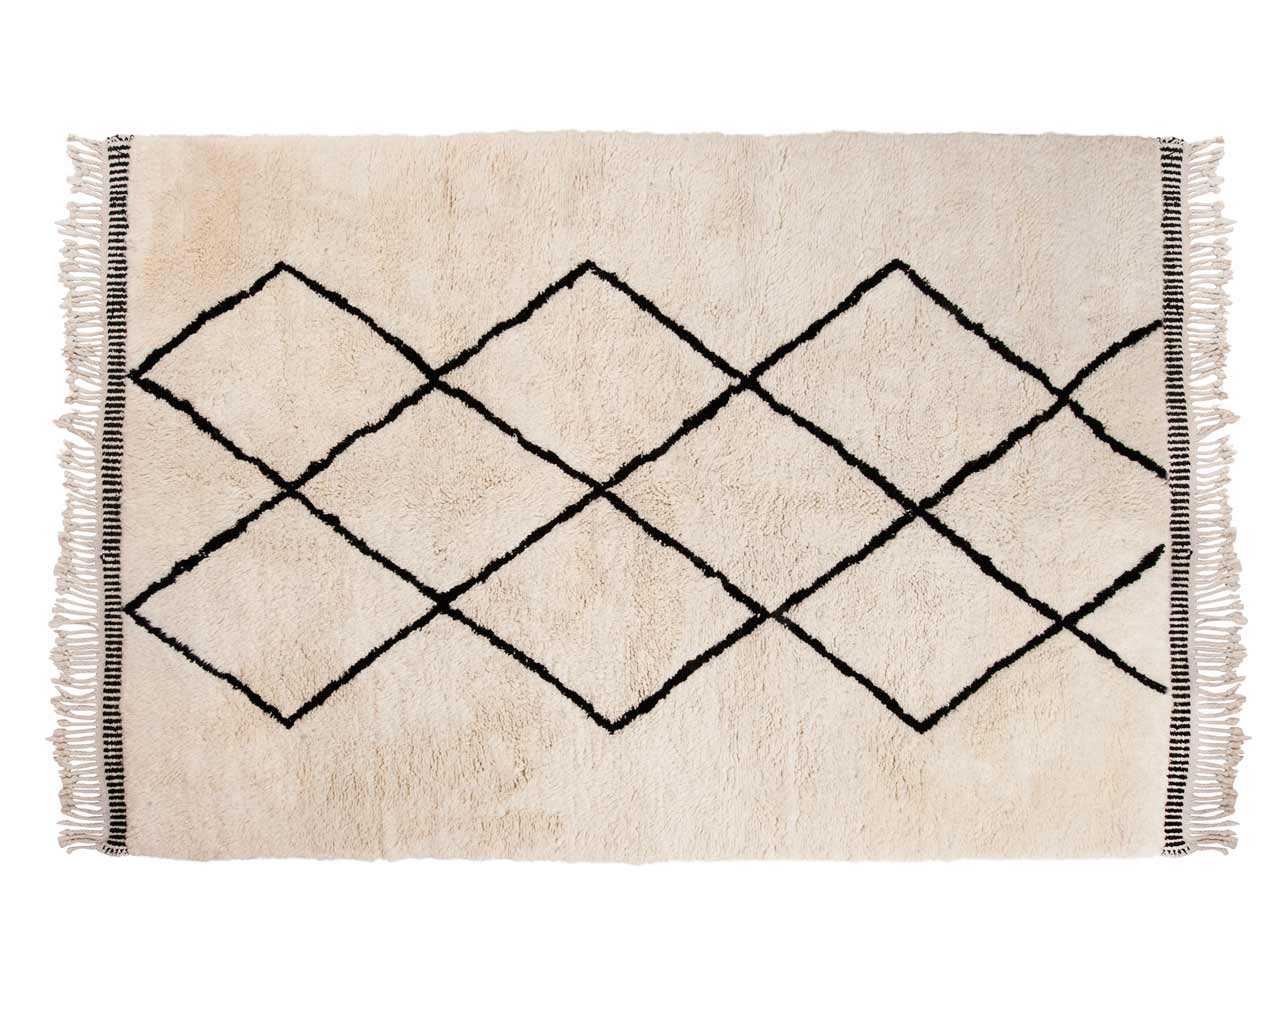 berber rug pattern clean